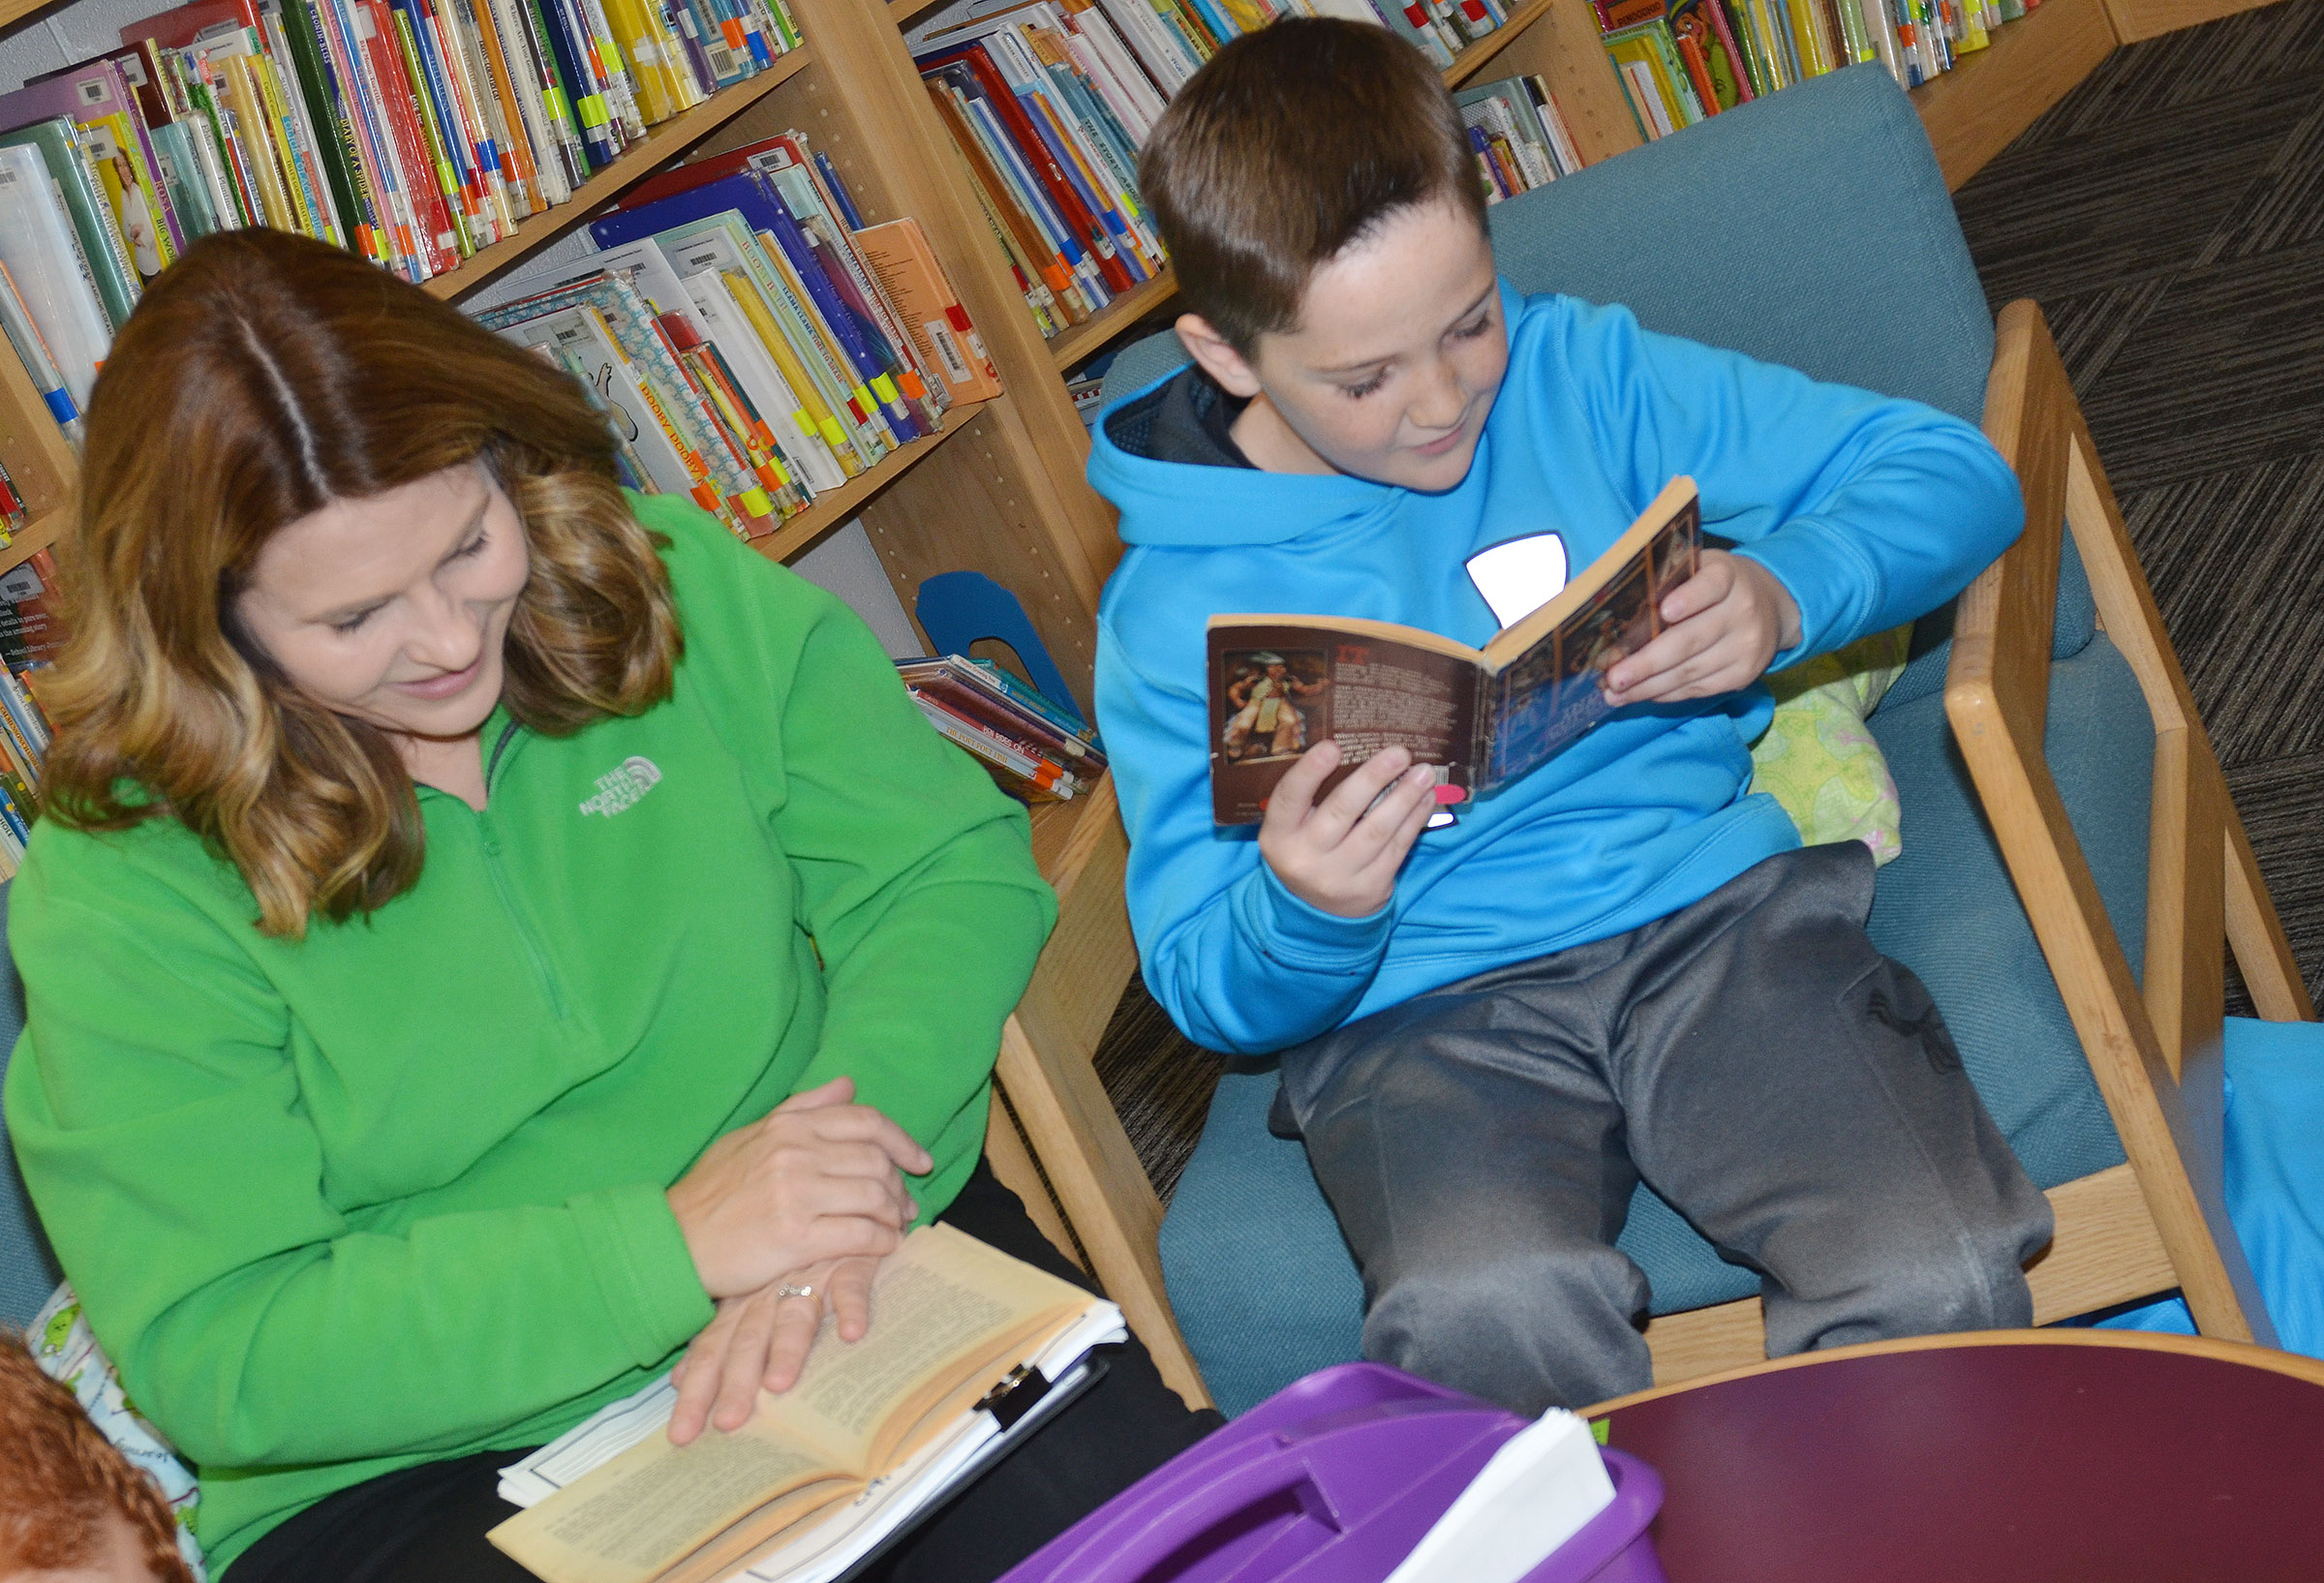 CES Guidance Counselor Sonya Orberson listens as third-grader Luke Adkins reads.